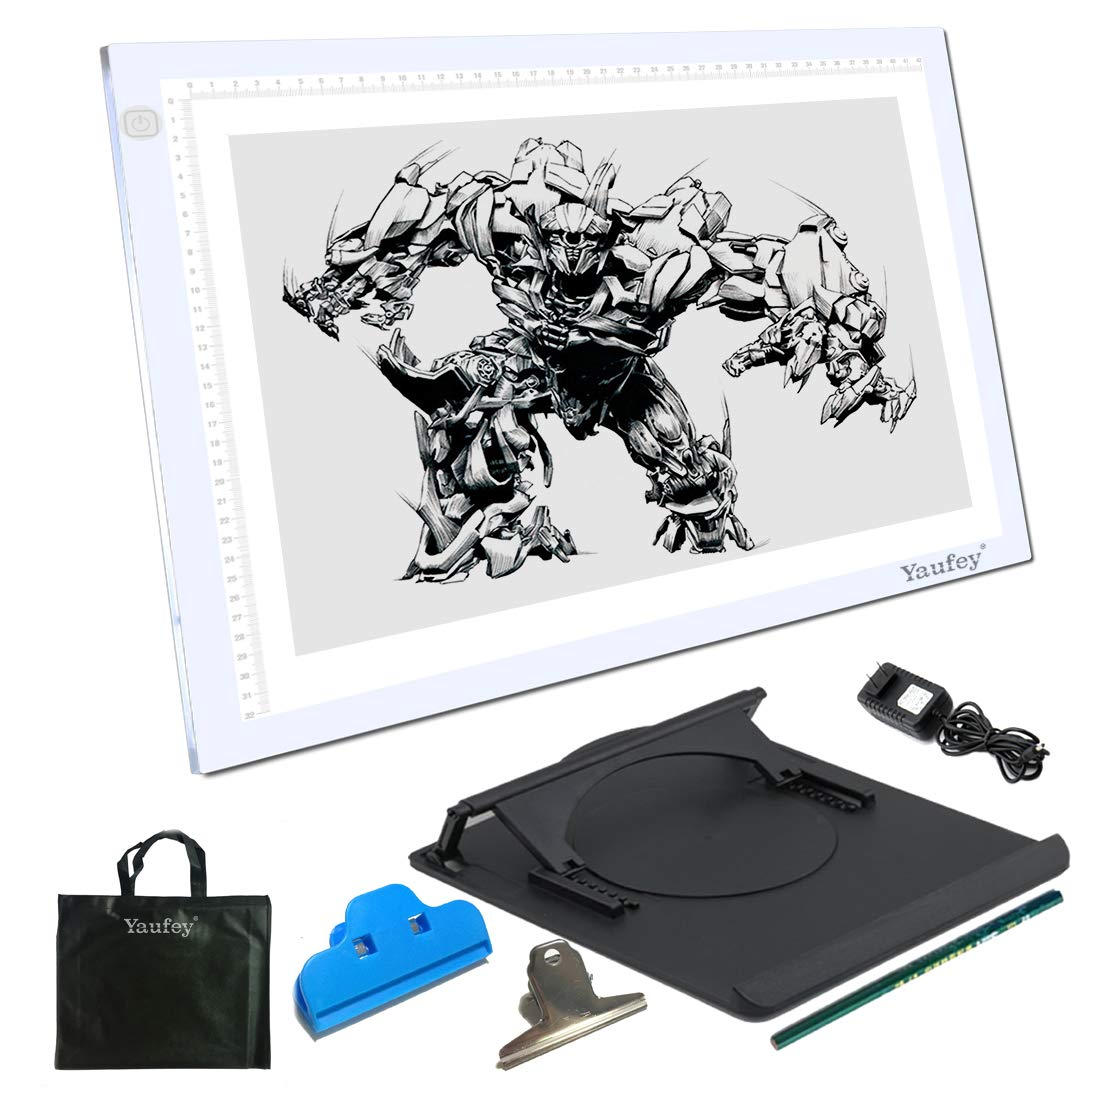 A3 Light Box,Yaufey Ultra-Thin Portable LED Artcraft tracing Board DC Power Cable 6 Levels Tracing Pad Copy Board for tracing Sketching Animation Designing X-ray Viewing